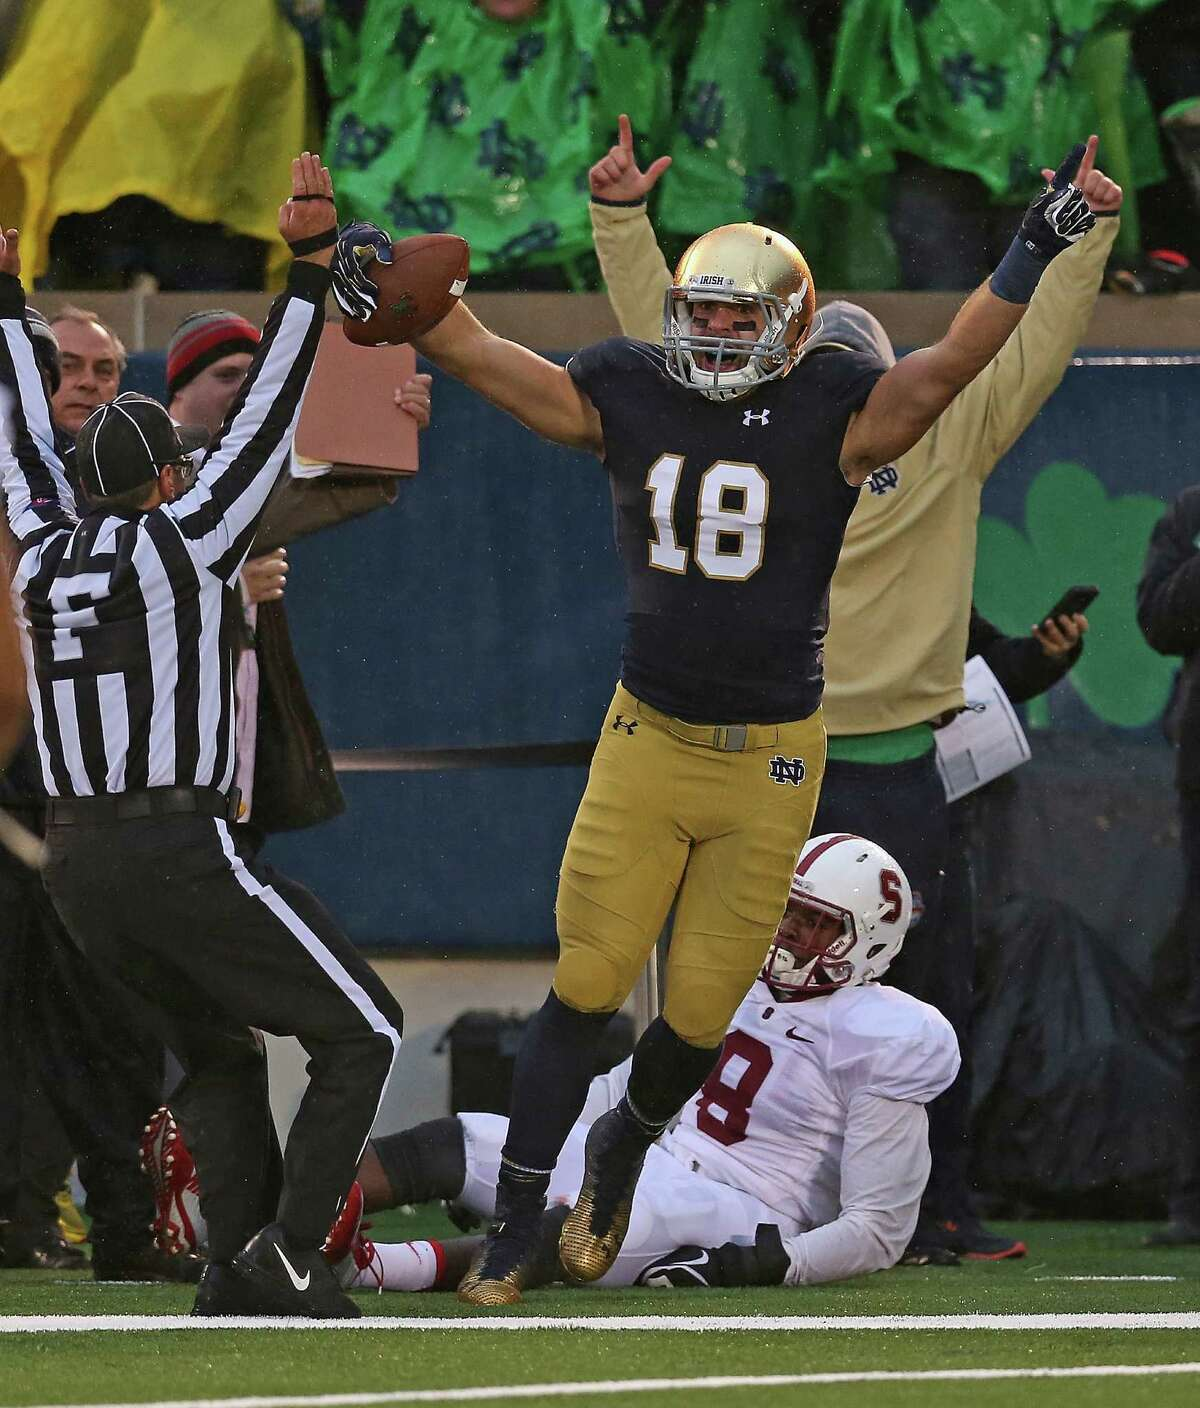 SOUTH BEND, IN - OCTOBER 04: Ben Koyack #18 of the Notre Dame Fighting Irish celebrates catching the game-winning touchdown pass over Jordan Richards #8 of the Standford Cardinal at Notre Dame Stadium on October 4, 2014 in South Bend, Indiana. Notre Dame defeated Standford 17-14. (Photo by Jonathan Daniel/Getty Images)